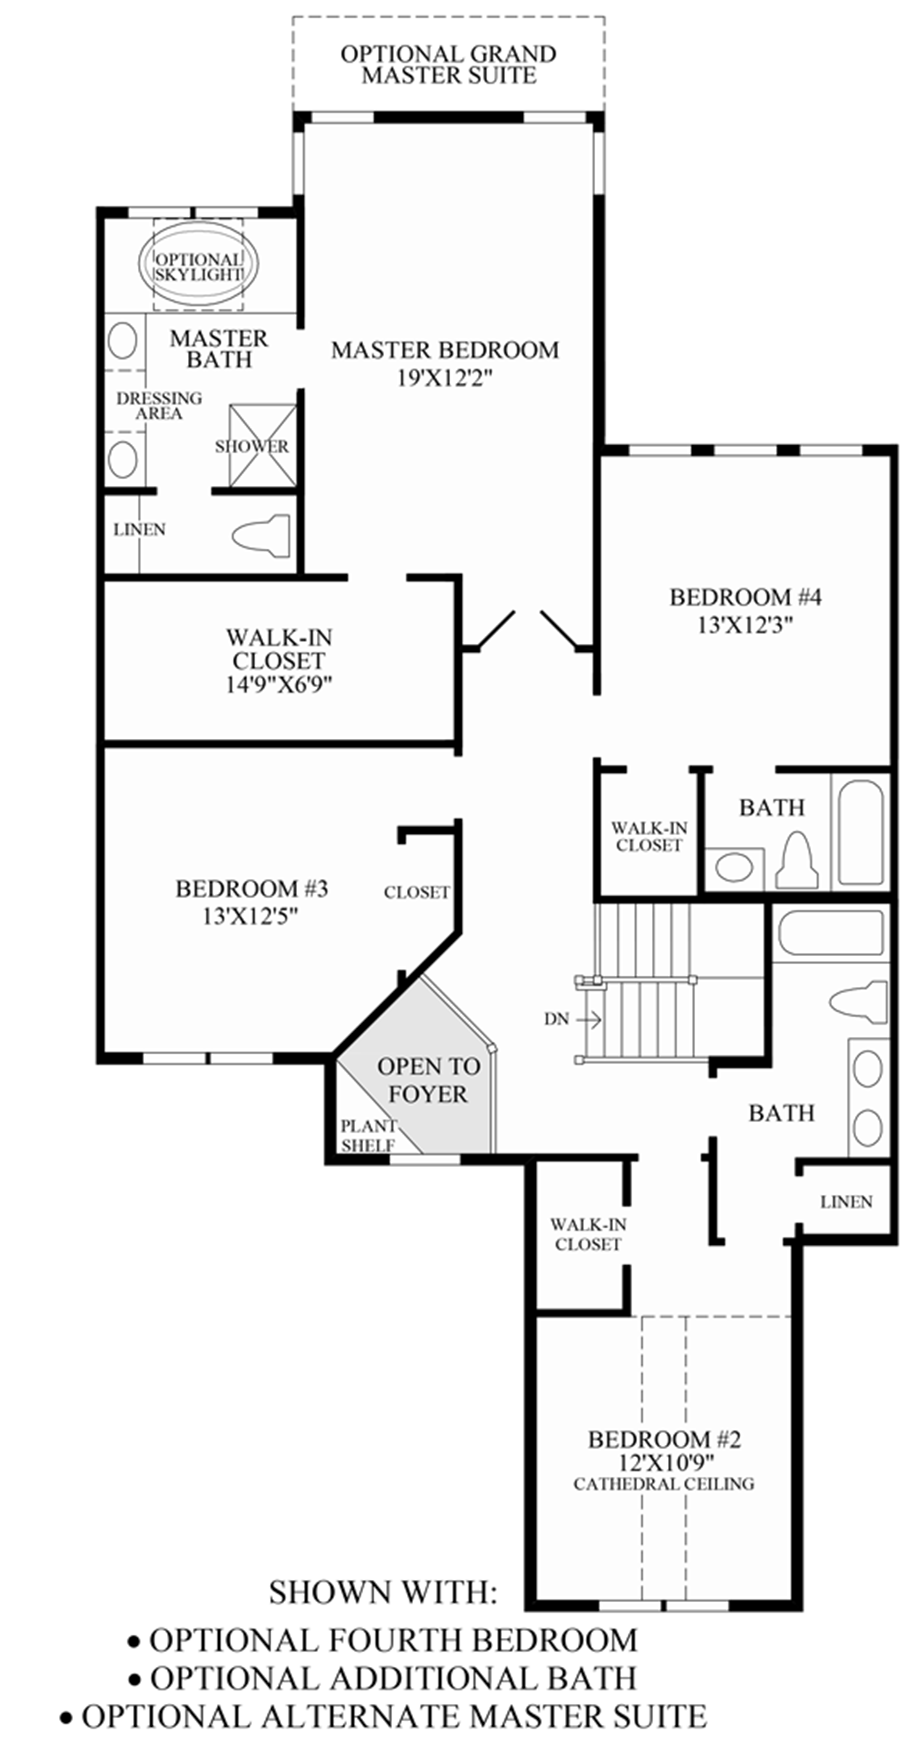 Optional 4th Bedroom, Additional Bath & Alternate Master Suite Floor Plan